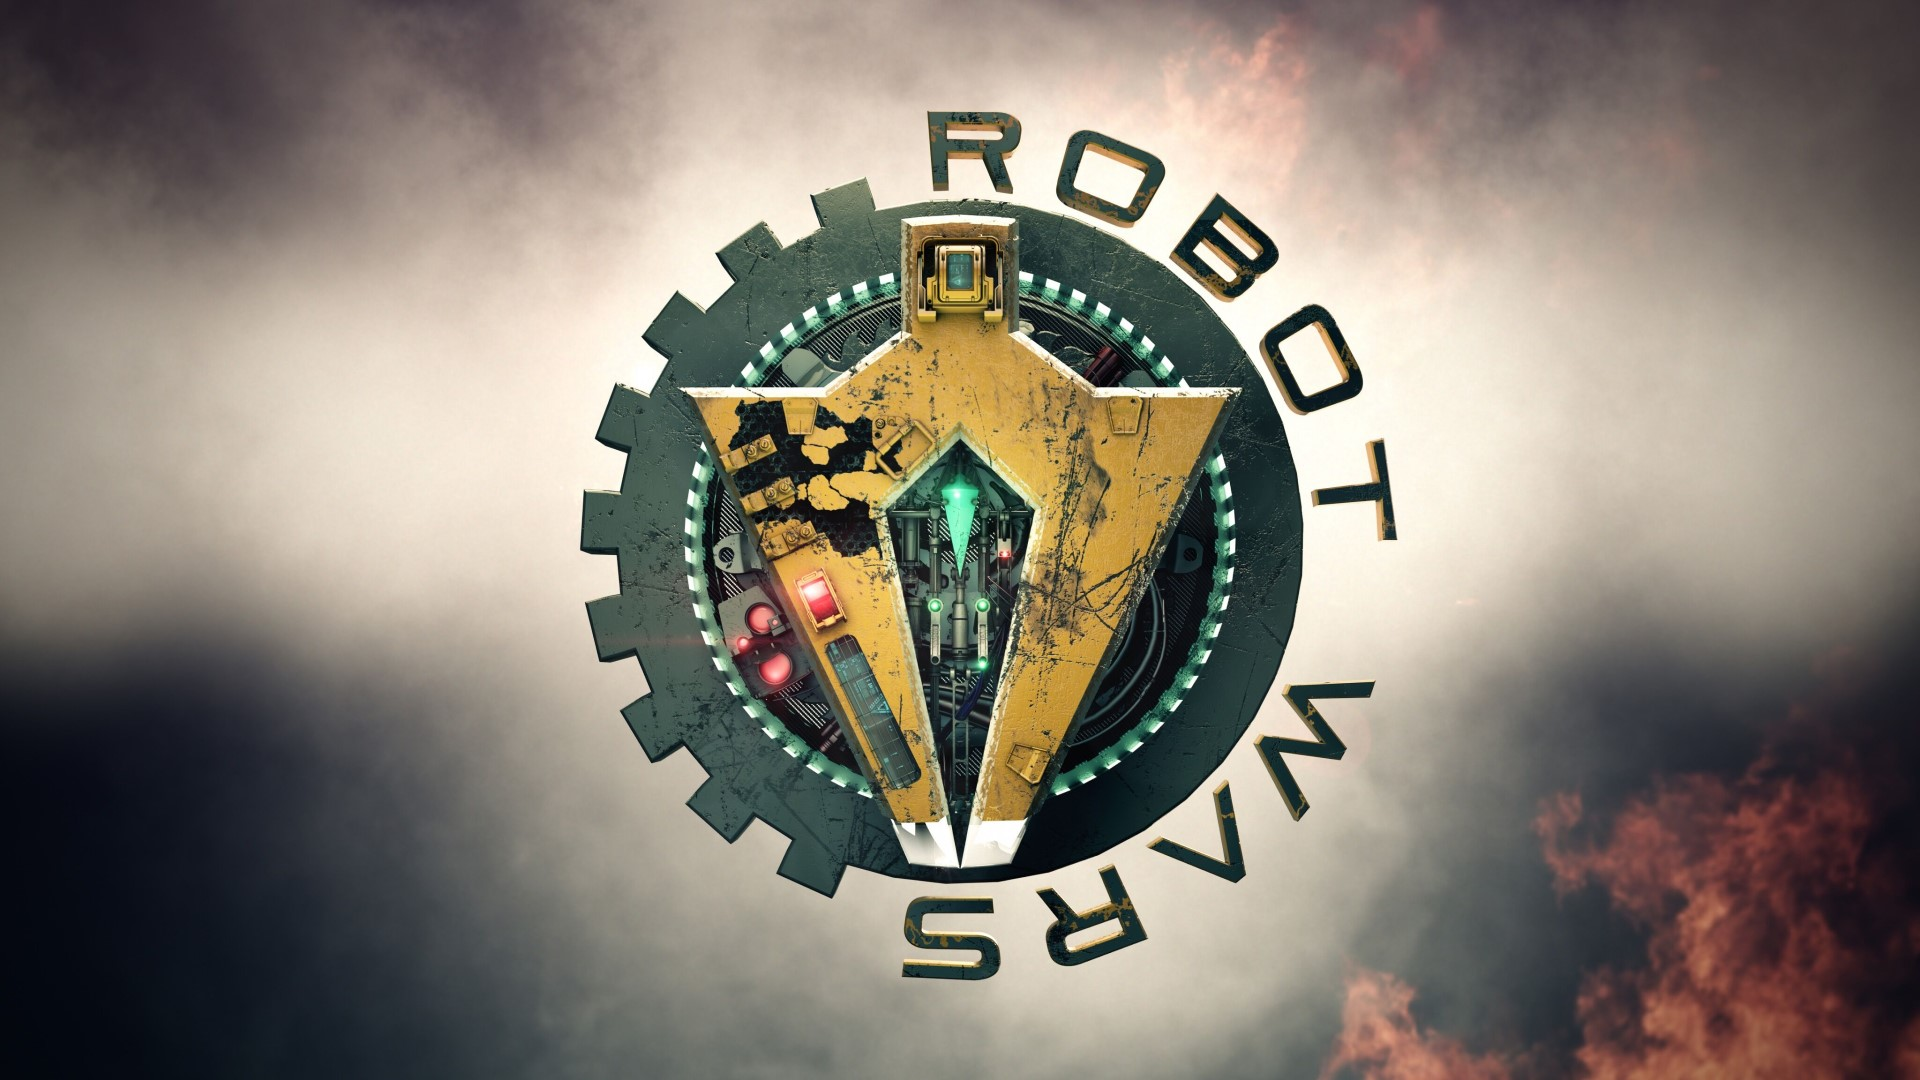 Robot Wars - New Logo